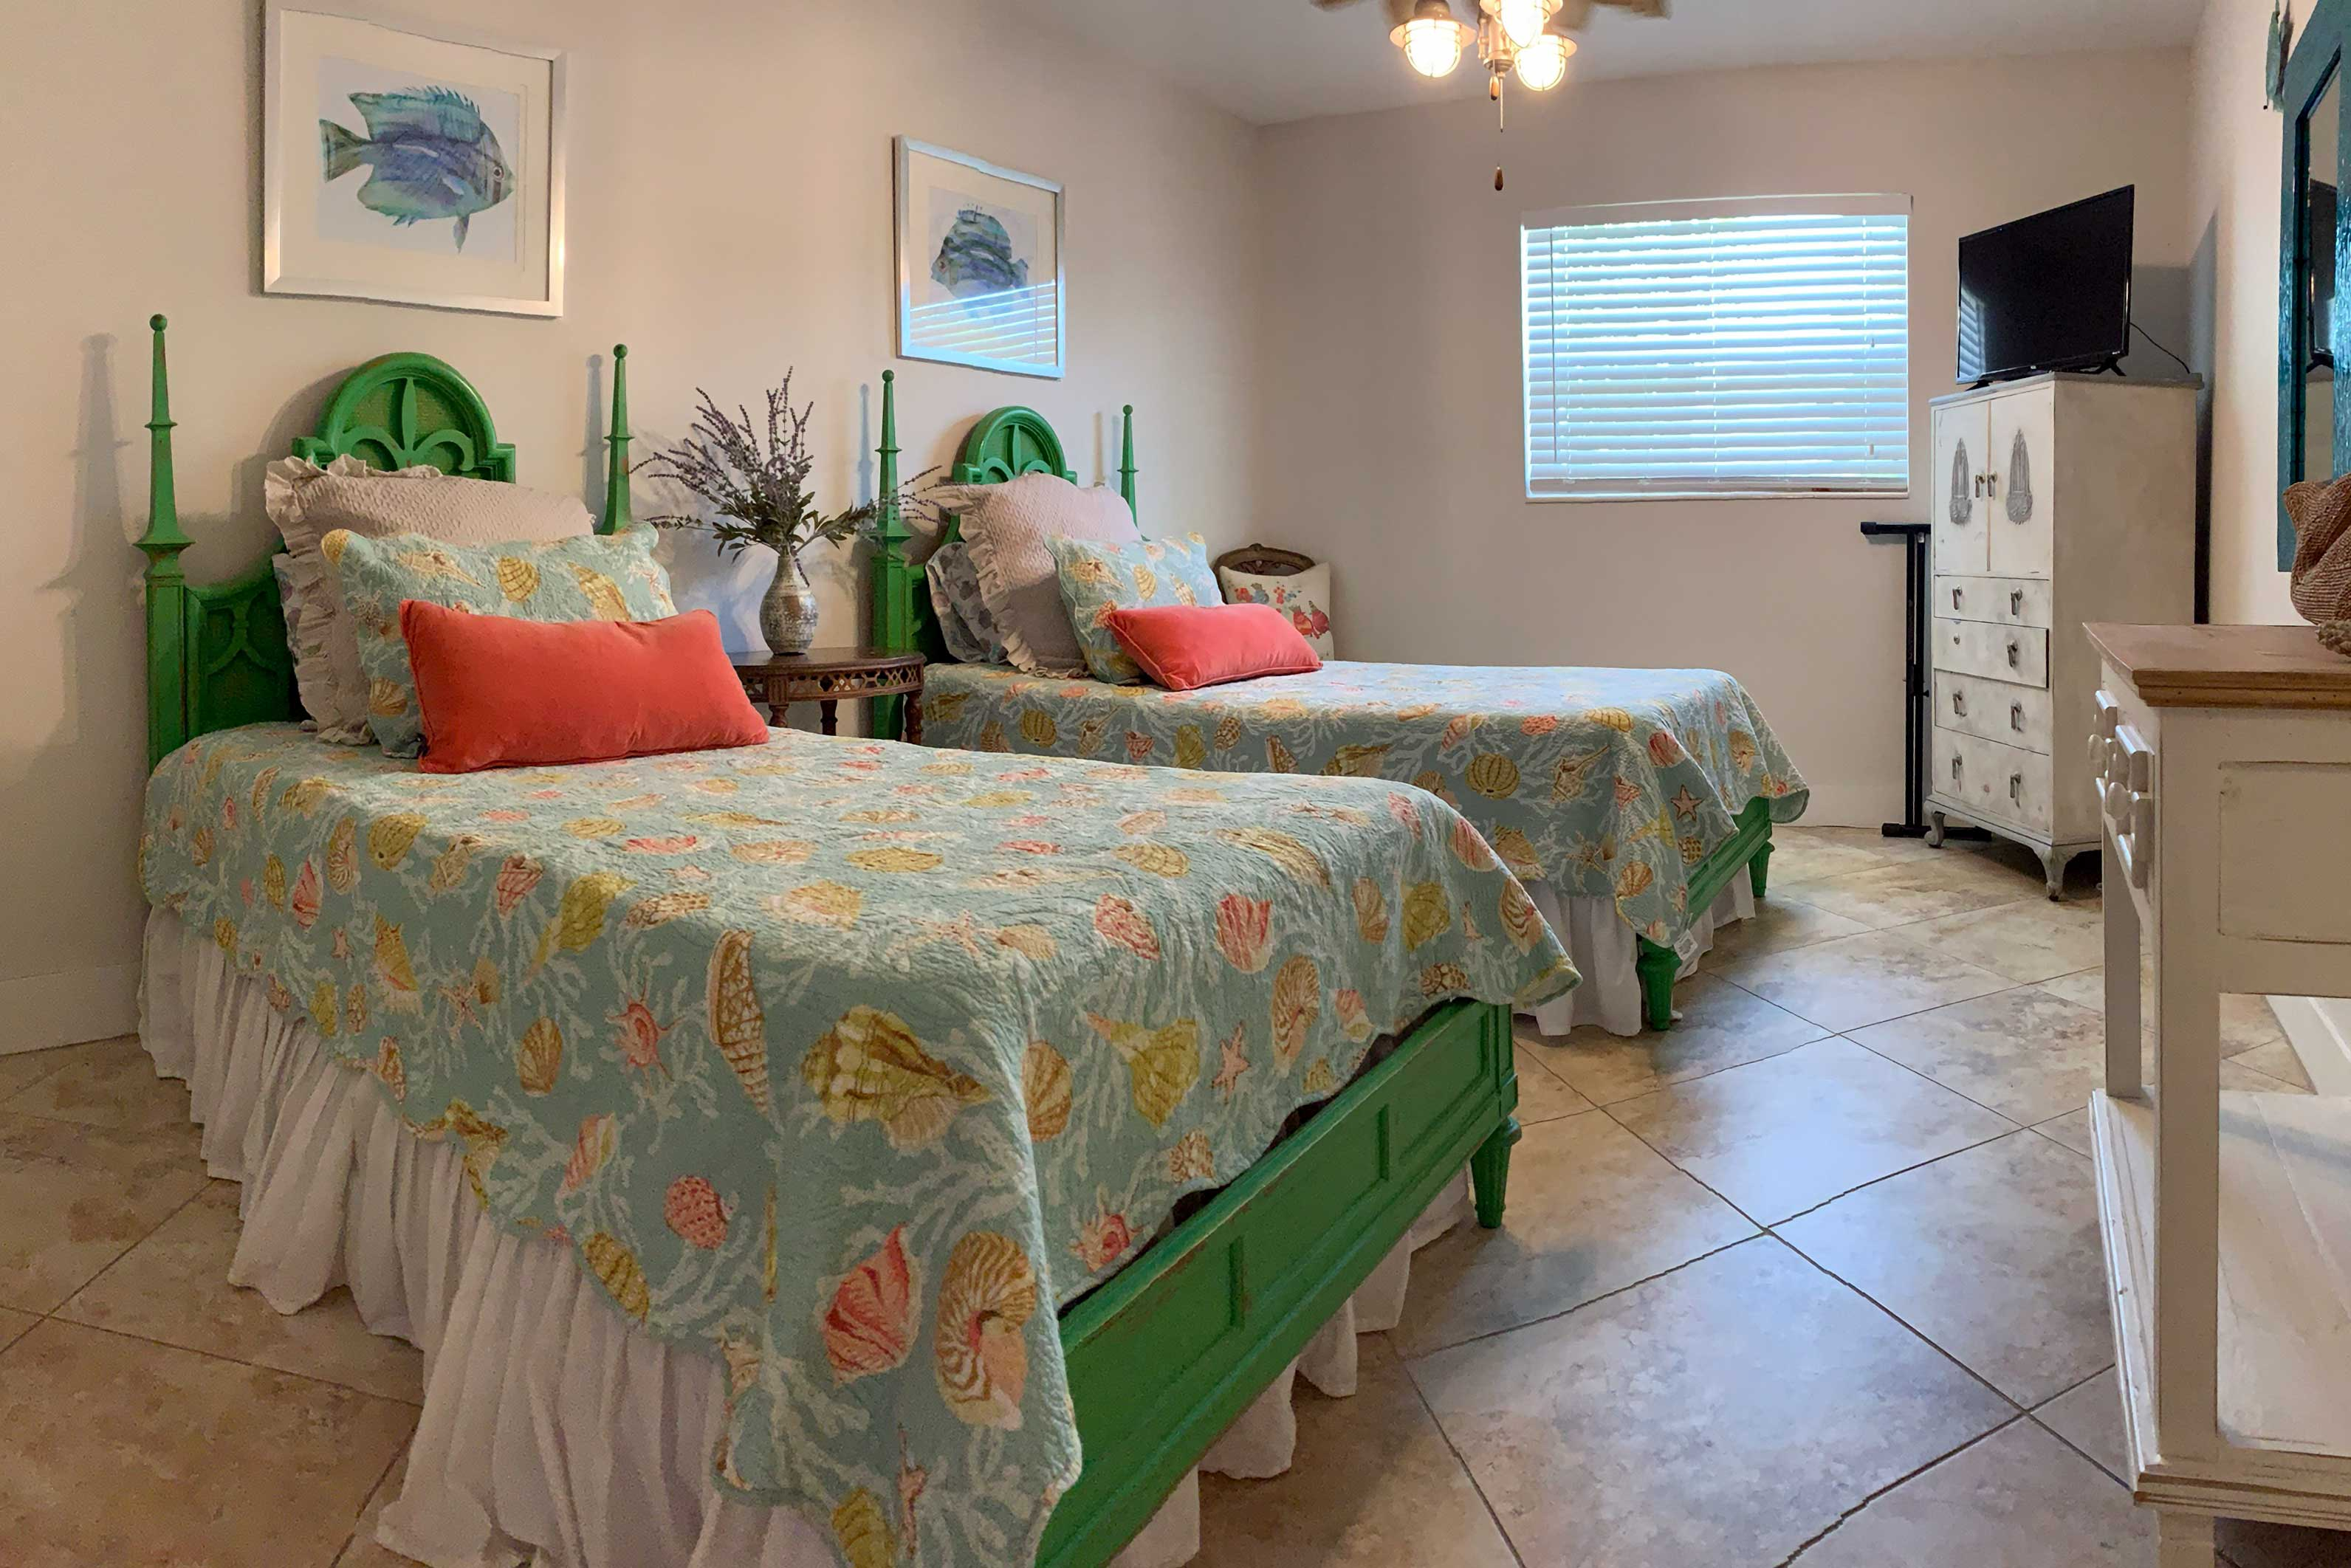 Bedroom 3 | 2 Twin Beds | Linens Provided